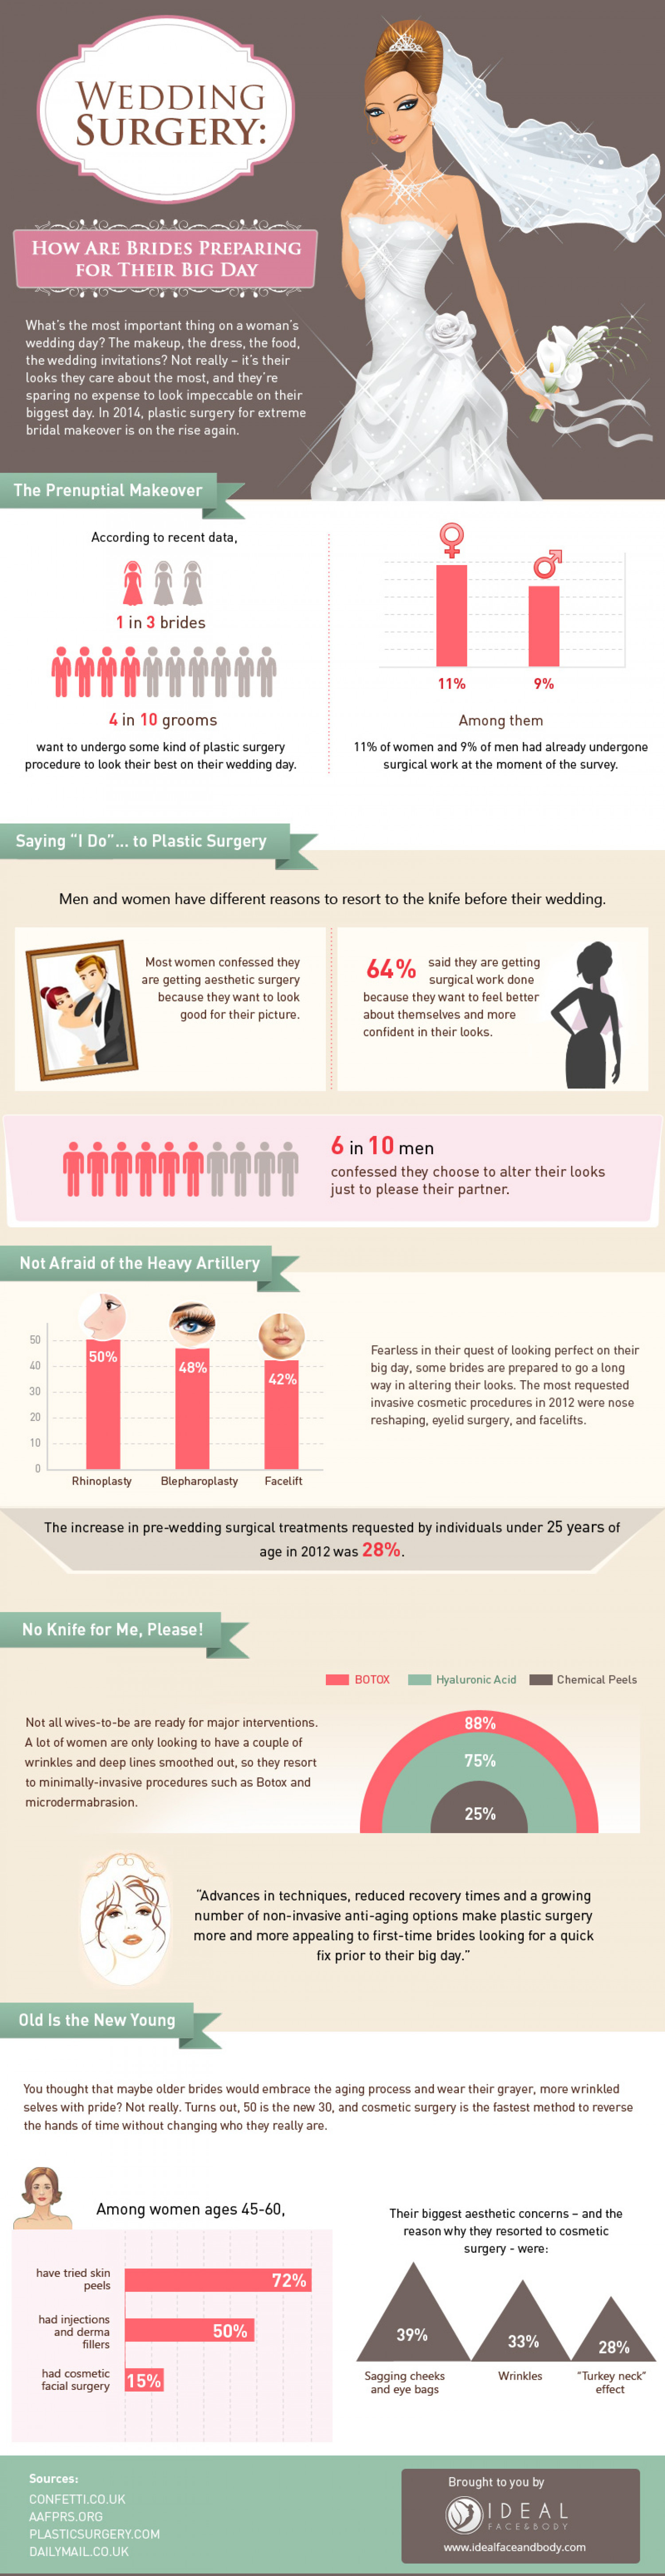 Wedding Surgery: How Are Brides Preparing for Their Big Day Infographic